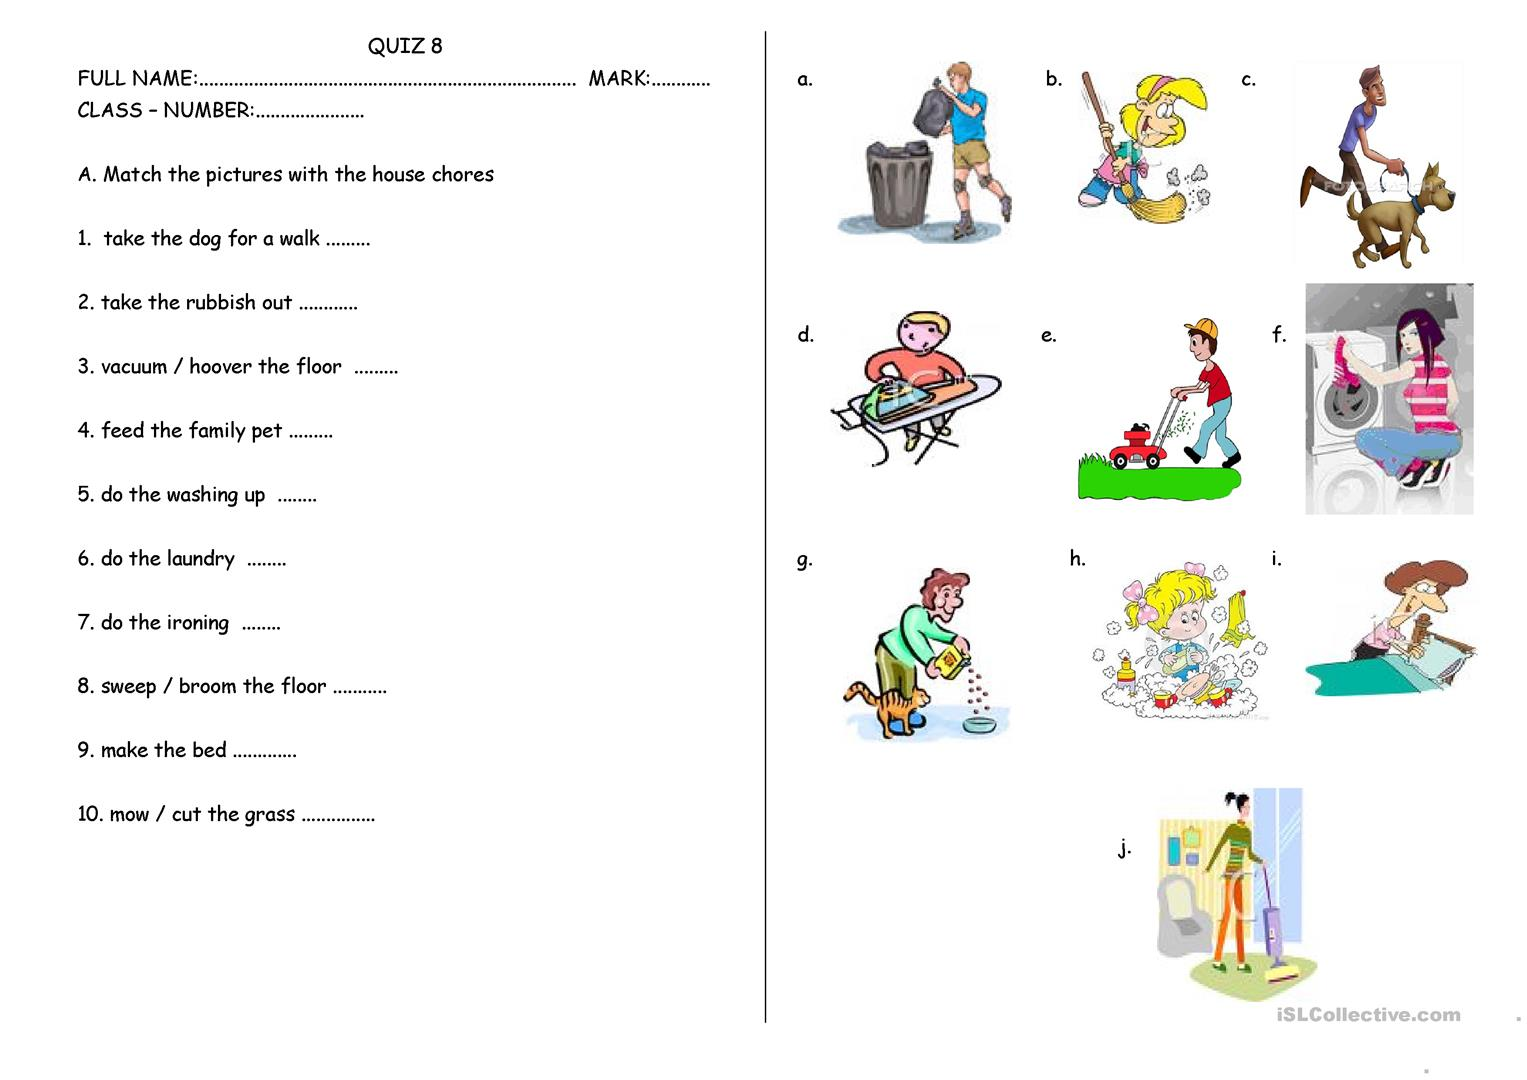 HOUSE CHORES AND SCHOOL RULES - English ESL Worksheets